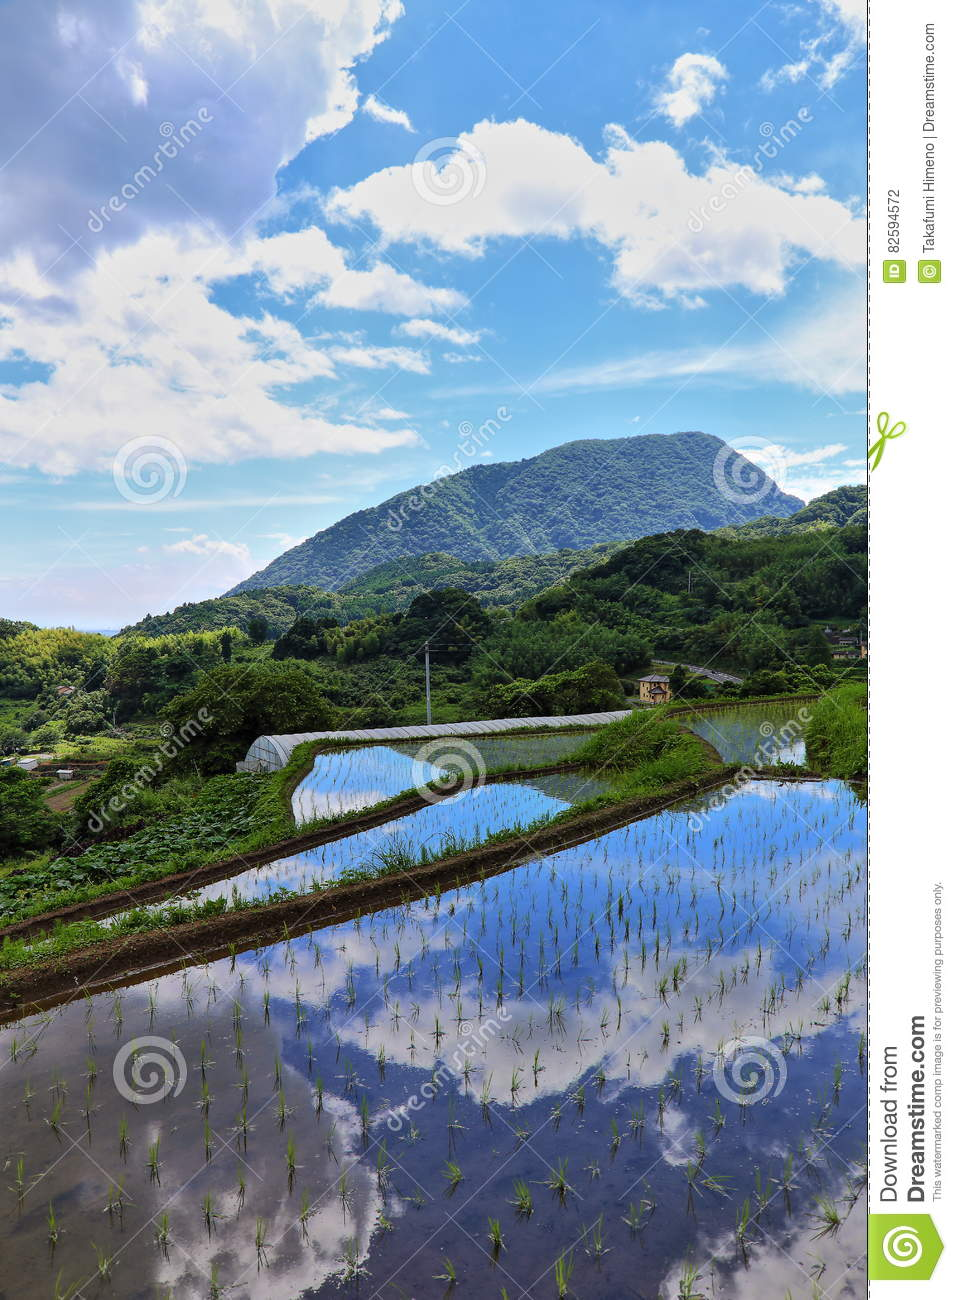 Paddy field and blue sky